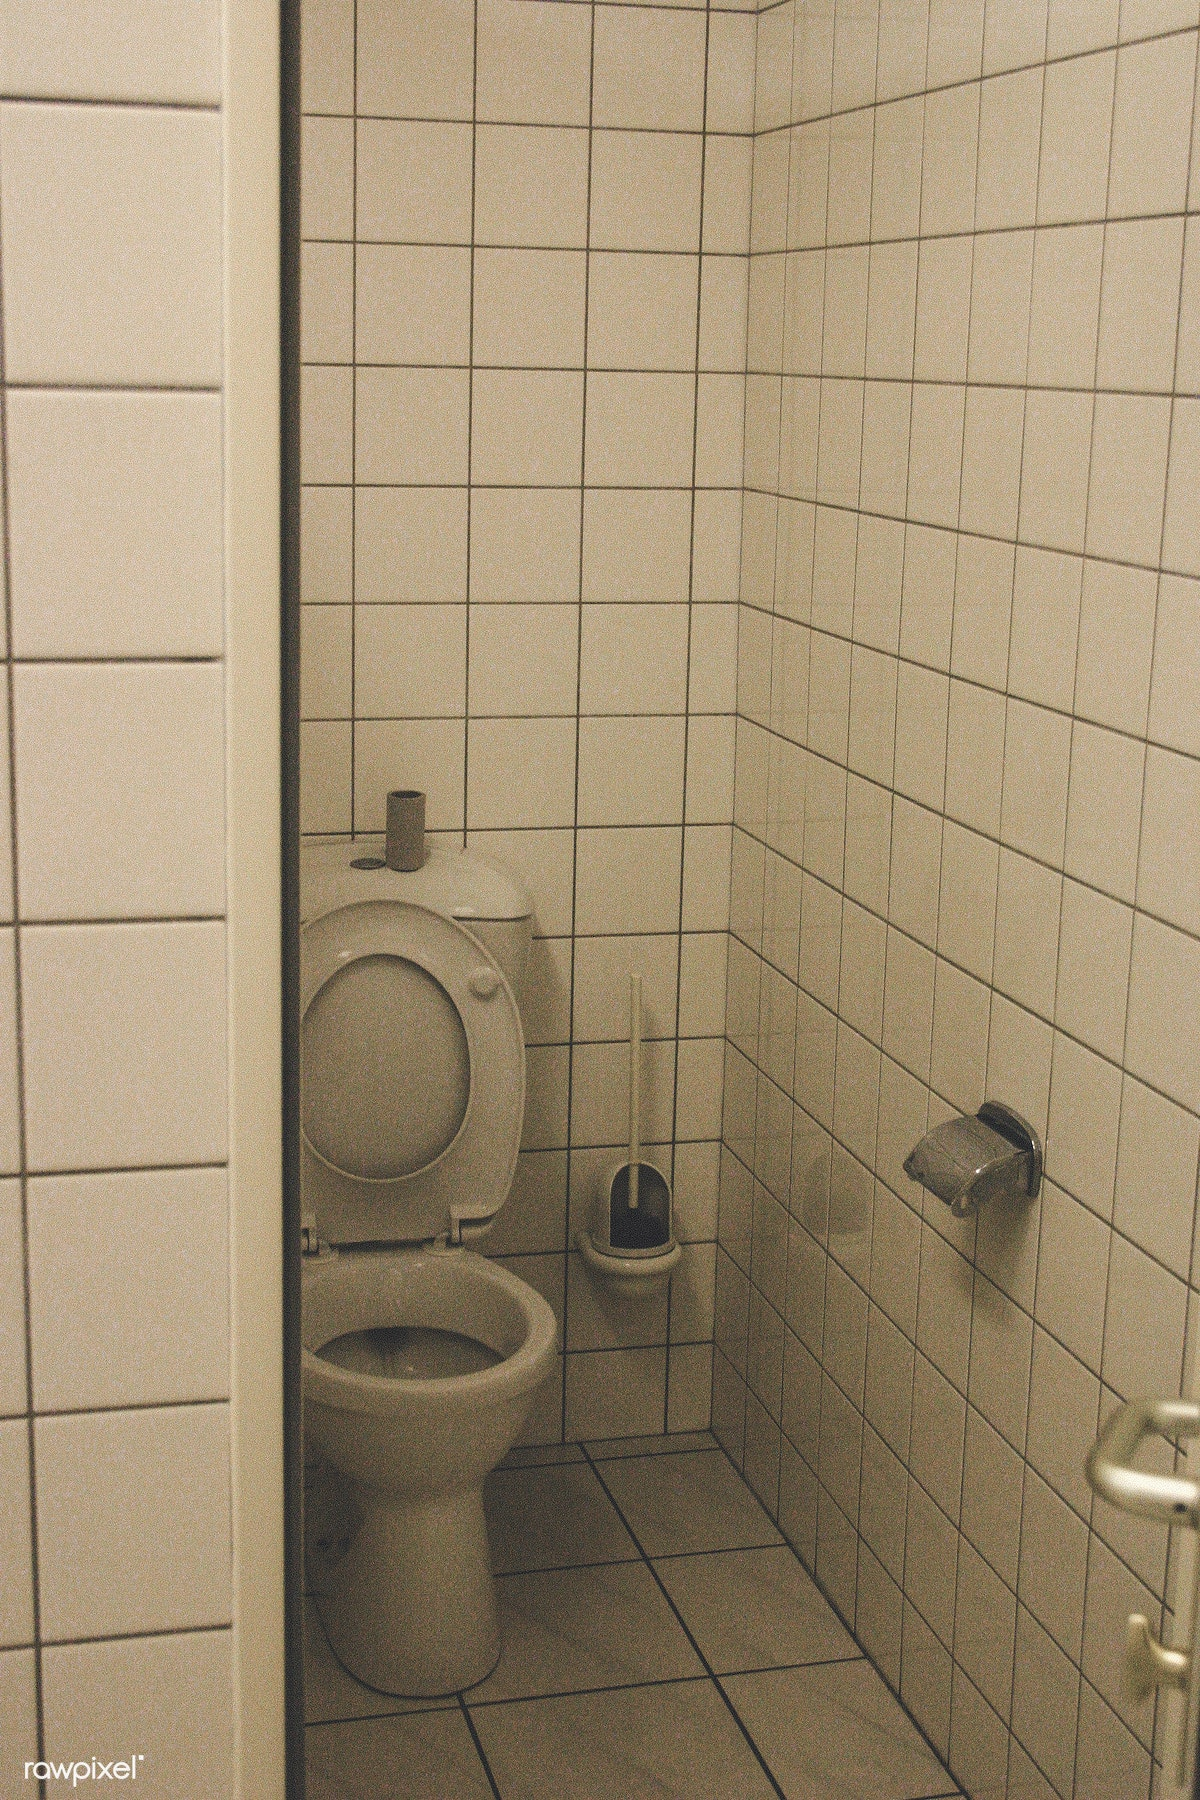 Toilet With White Tiles All Over